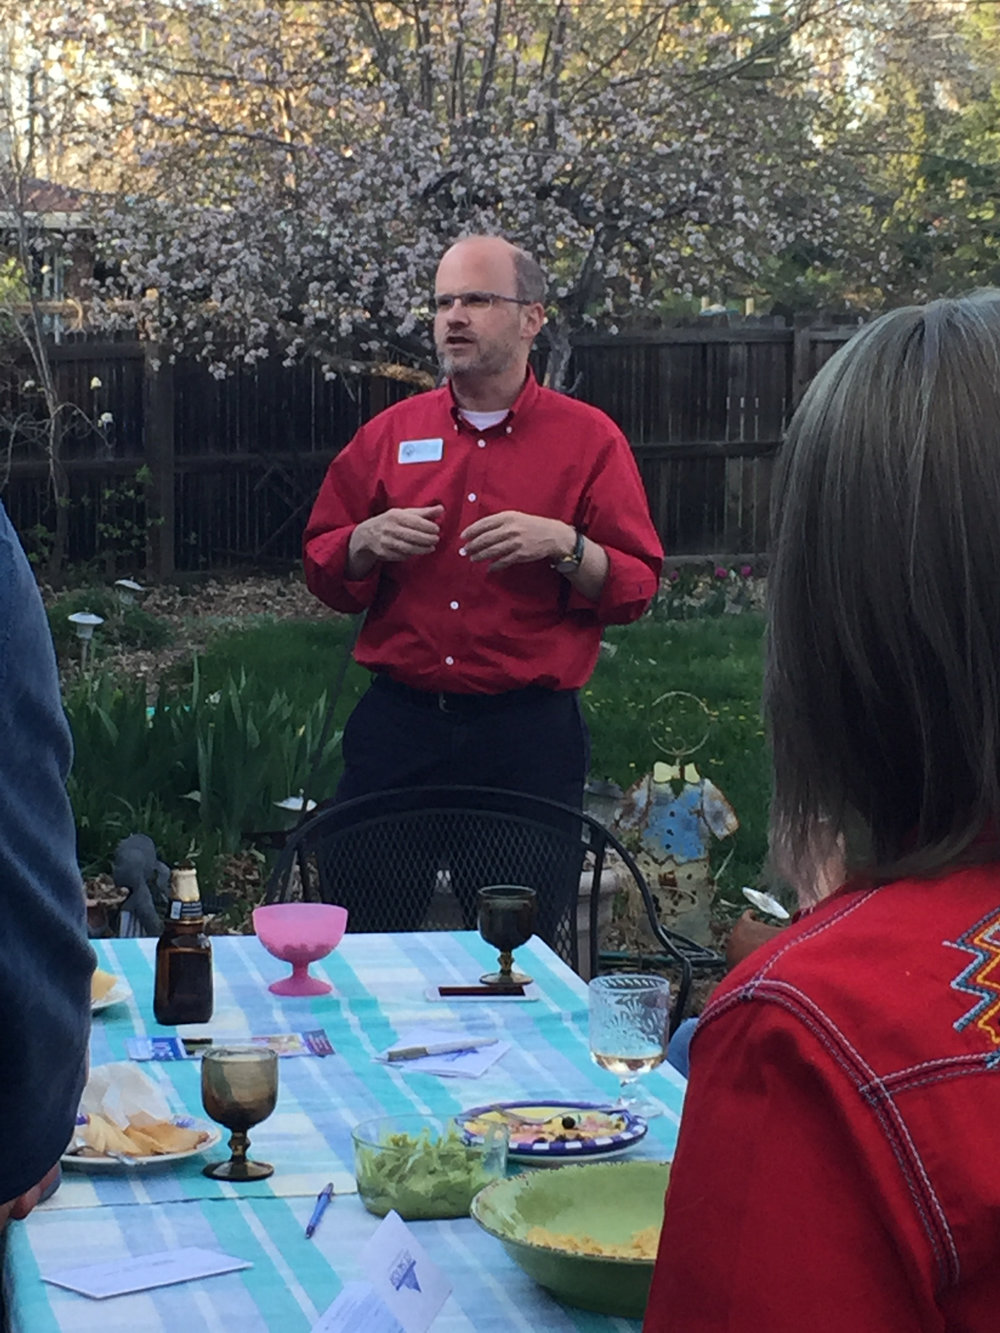 We have attended multiple house parties and meet and greets over the last 9 months.I love meeting voters and their friends in their homes and talking to them about what THEY want in a treasurer.